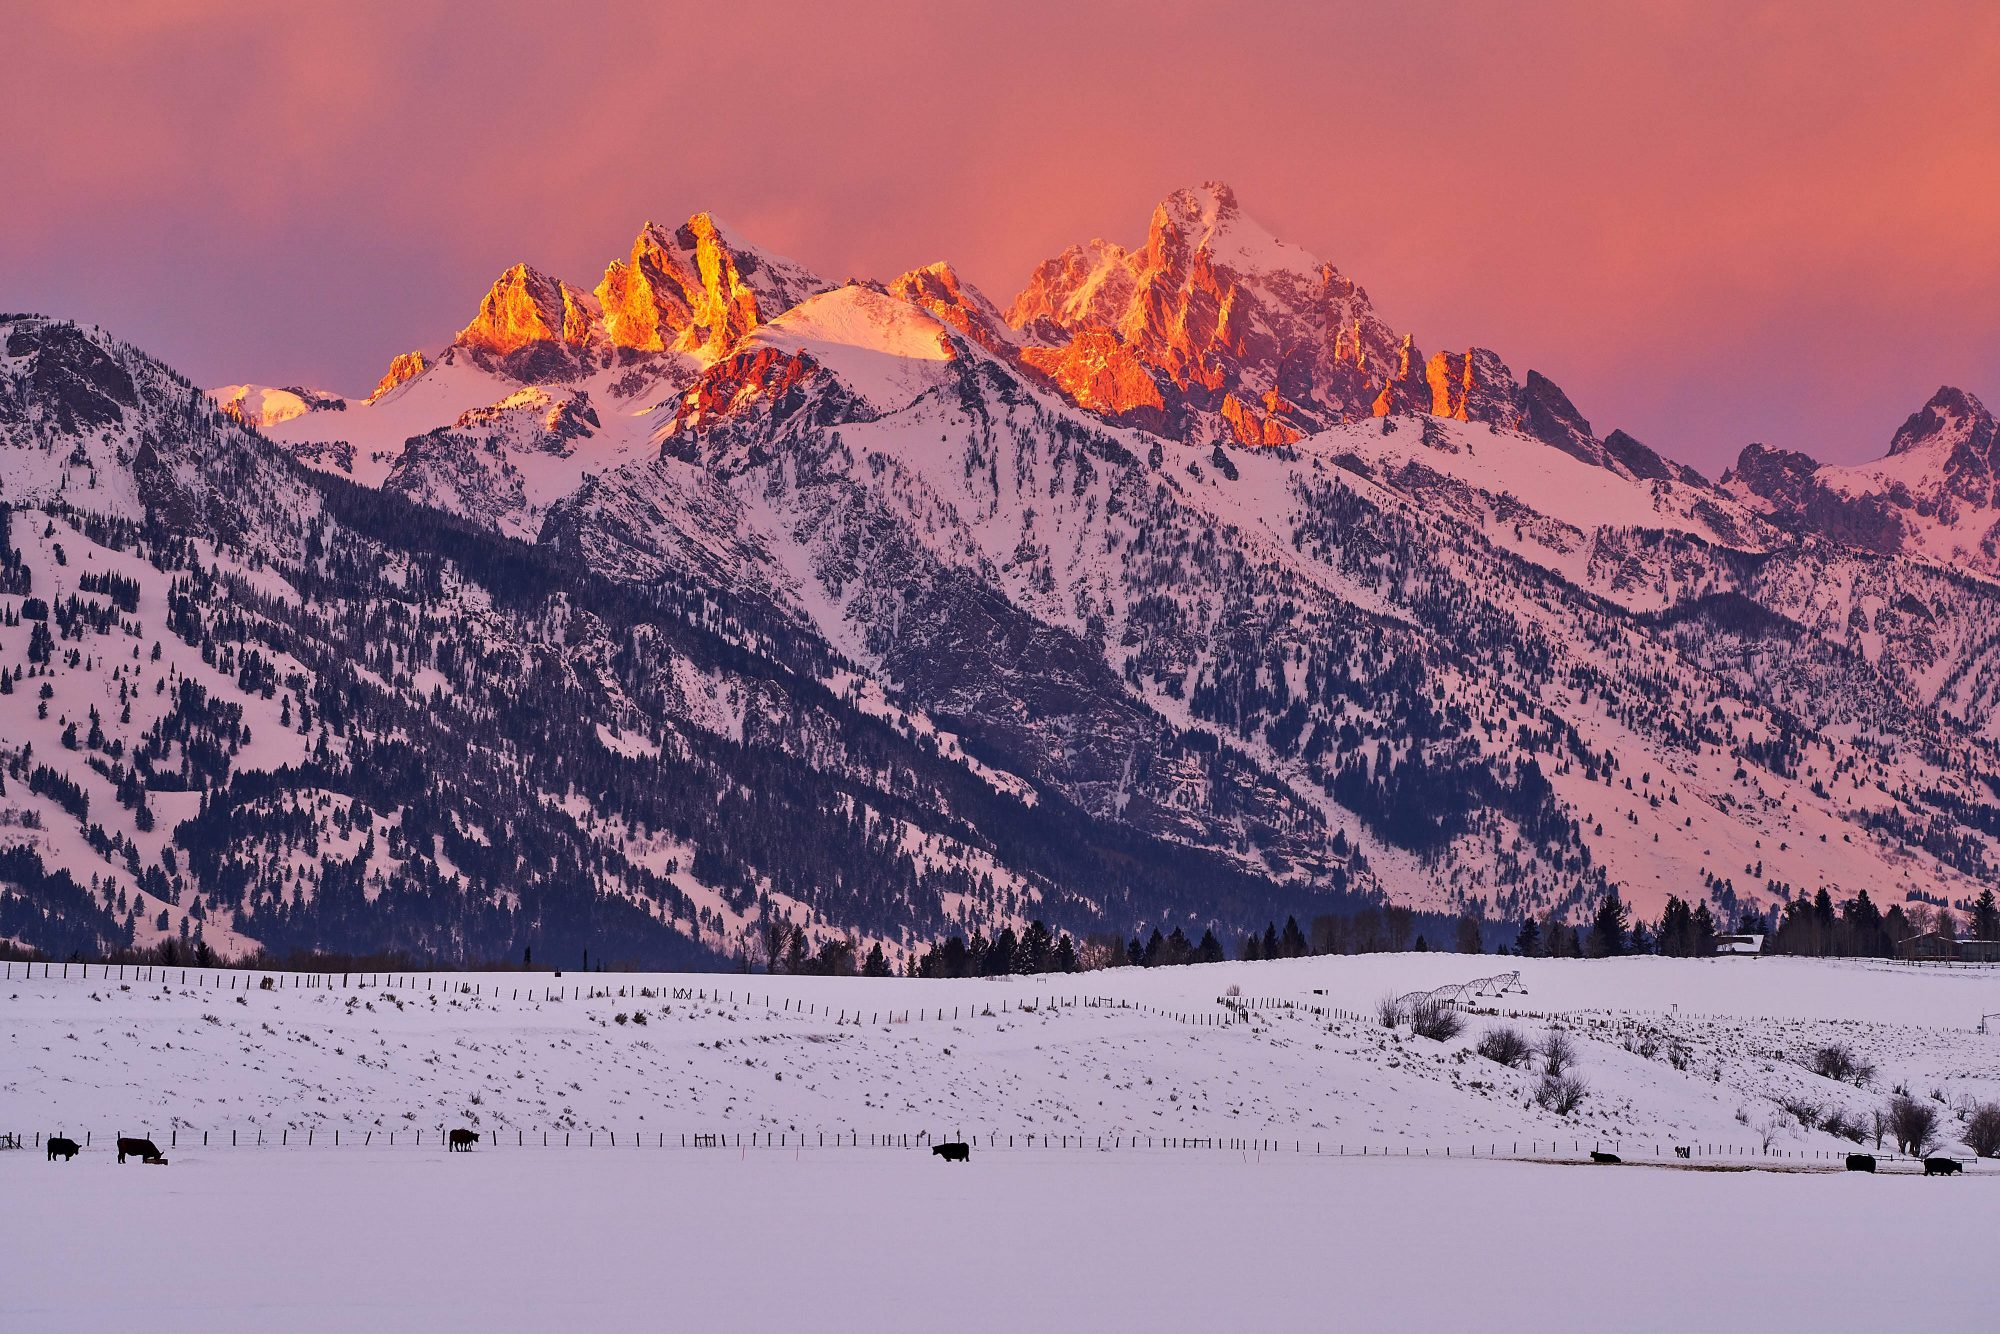 lightroom export tips - sunset over Grand Teton in Winter by Jay Goodrich